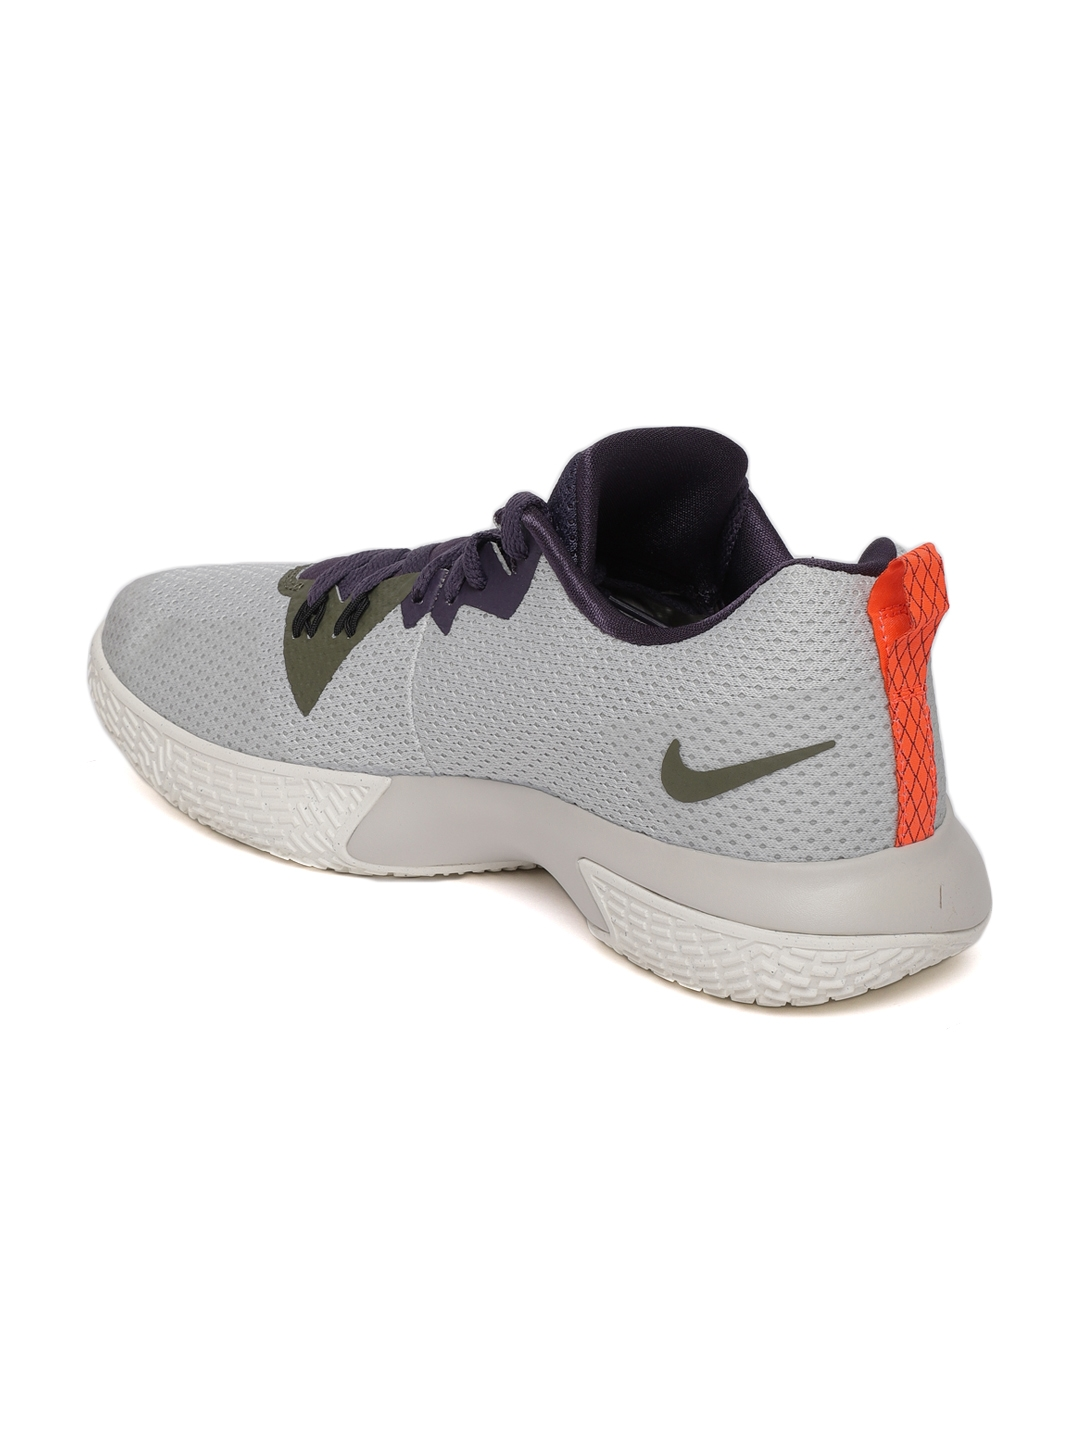 Buy Nike Men Grey   Navy Zoom Live II Basketball Shoes - Sports ... 99b8120d89a